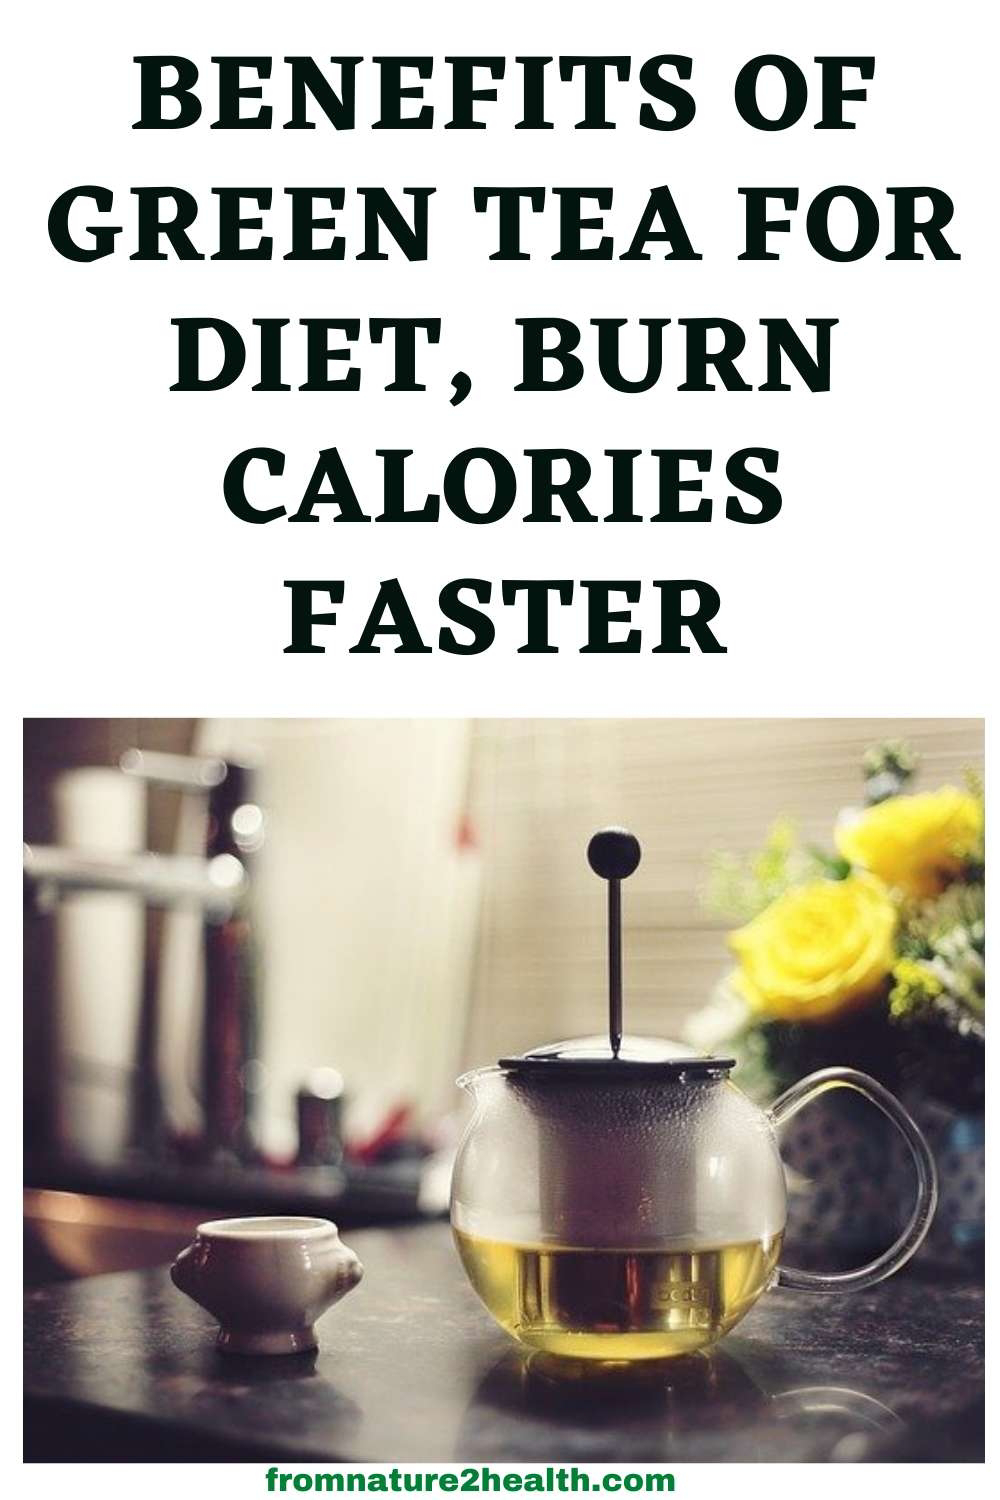 Benefits of Green Tea For Diet, Burn Calories Faster